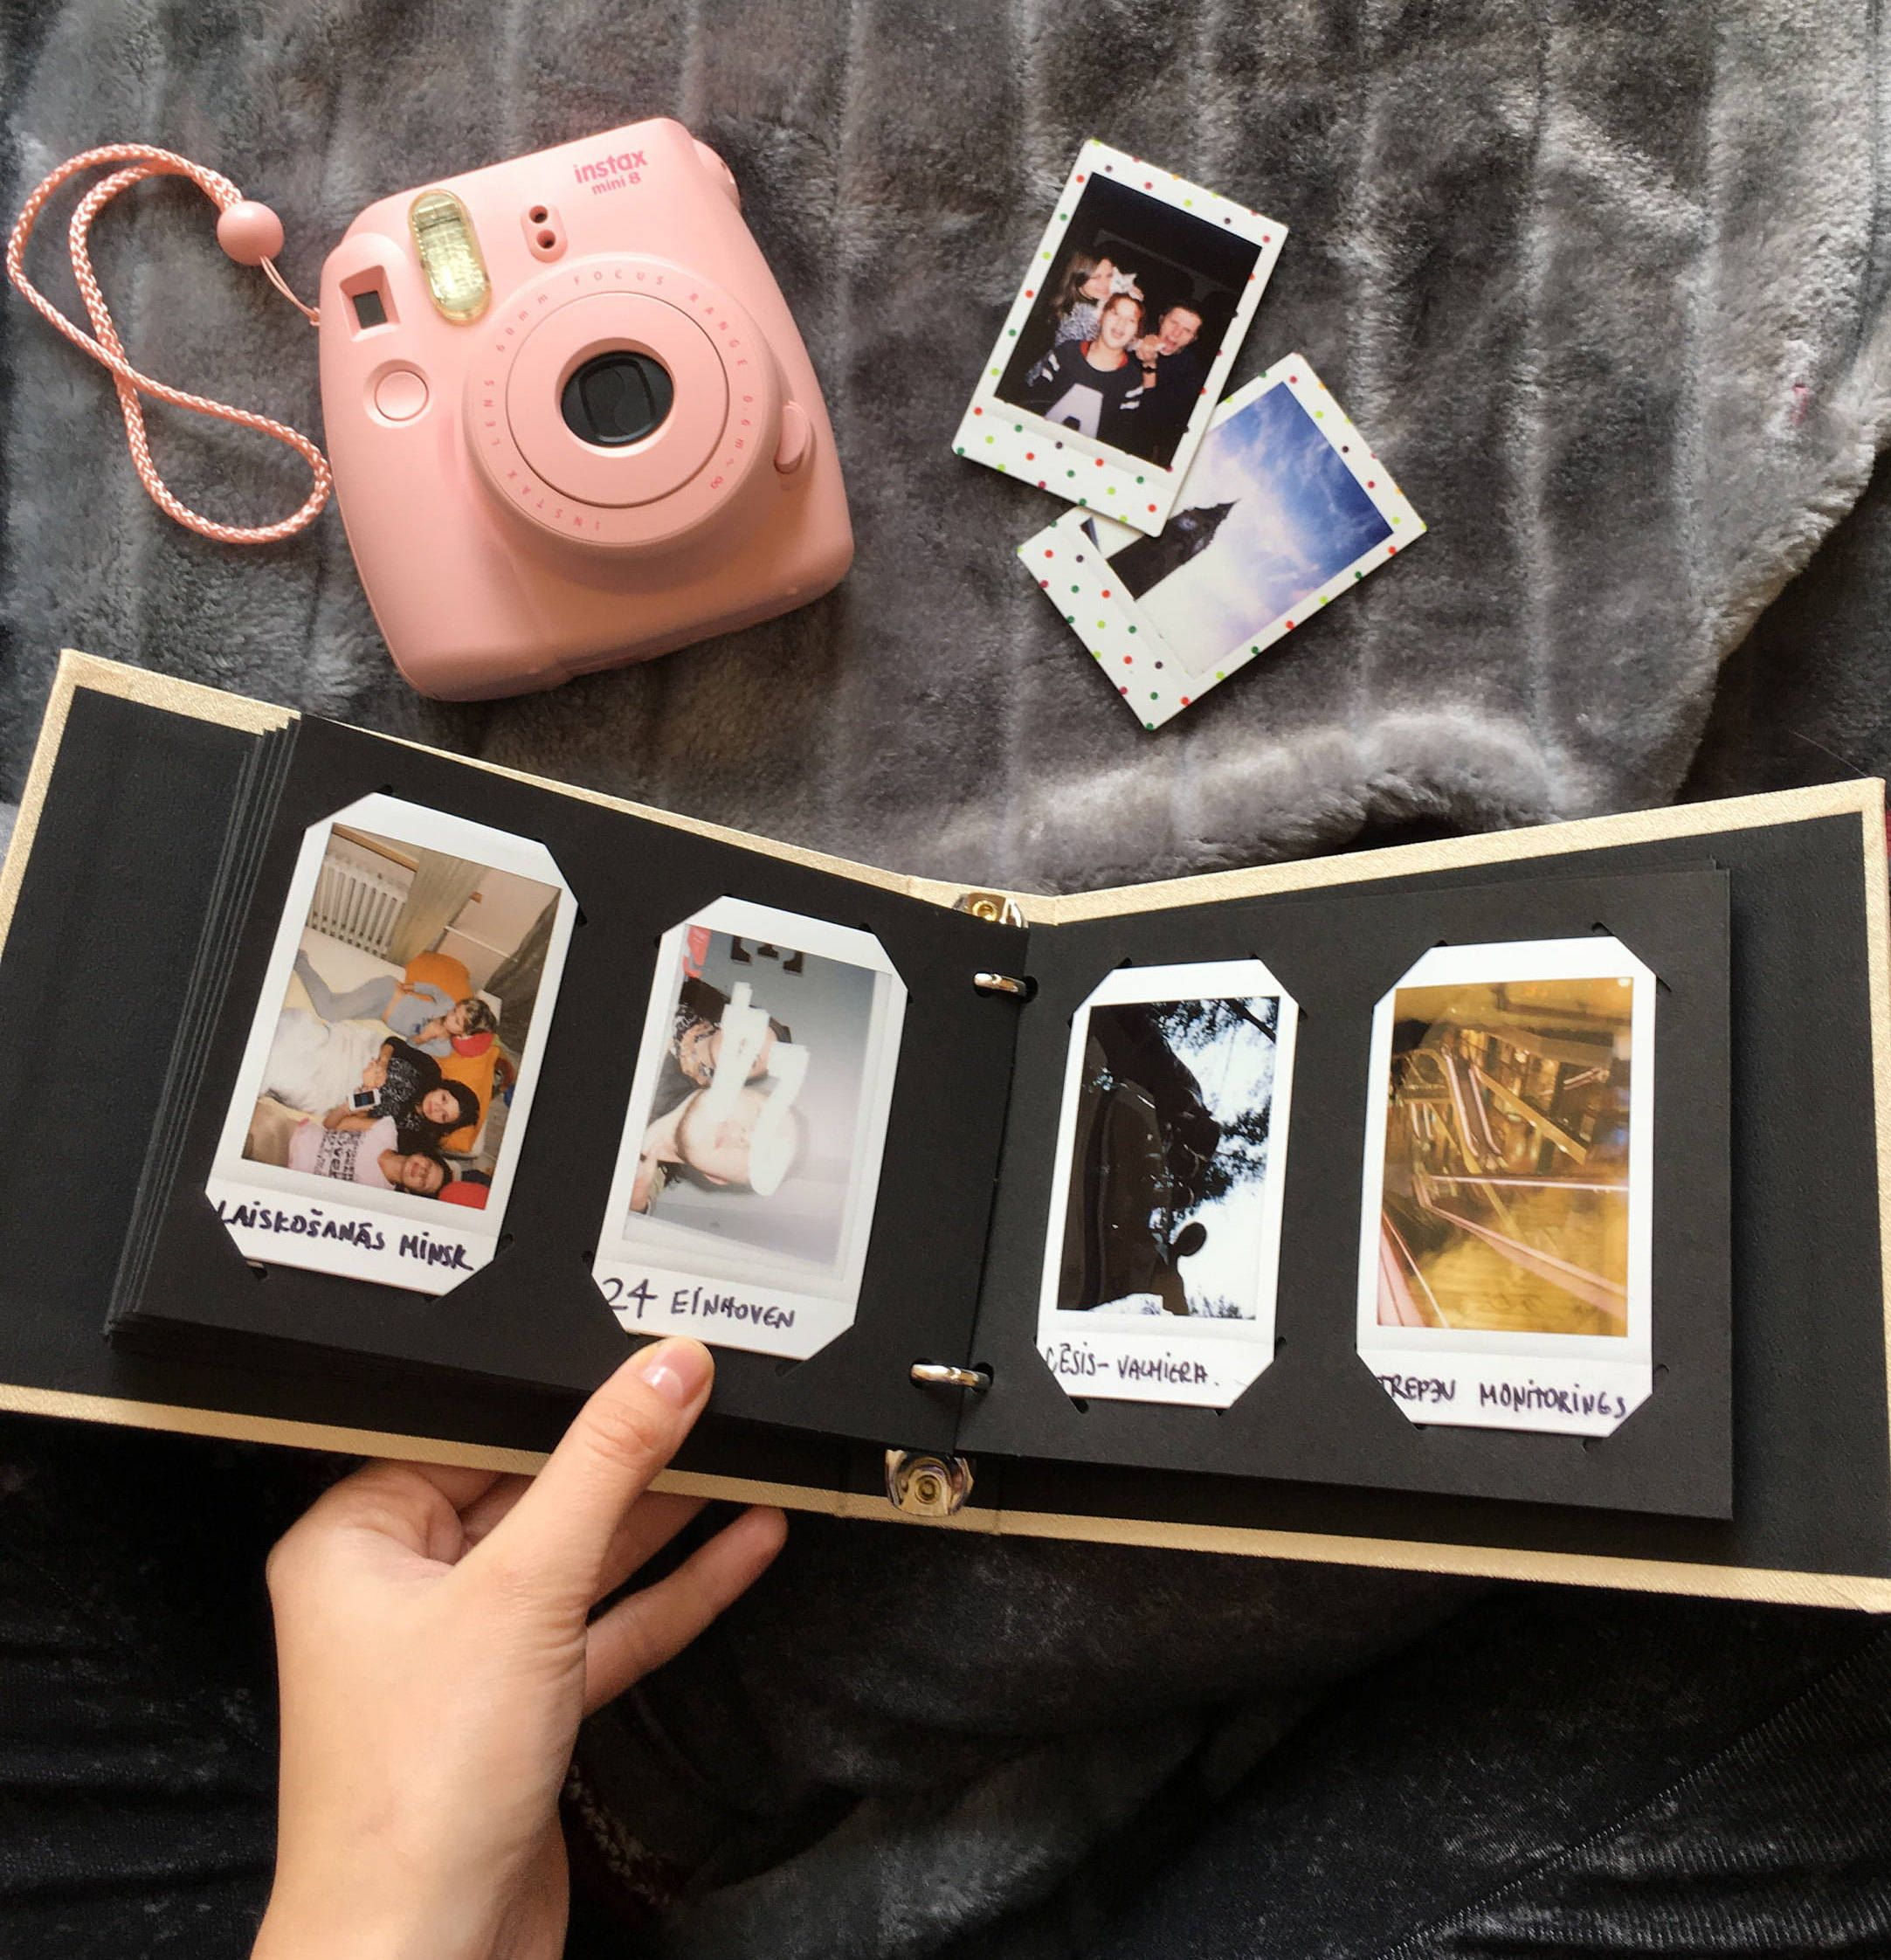 Instax Mini Album Instax Wedding Guest Book Photo Album For 60